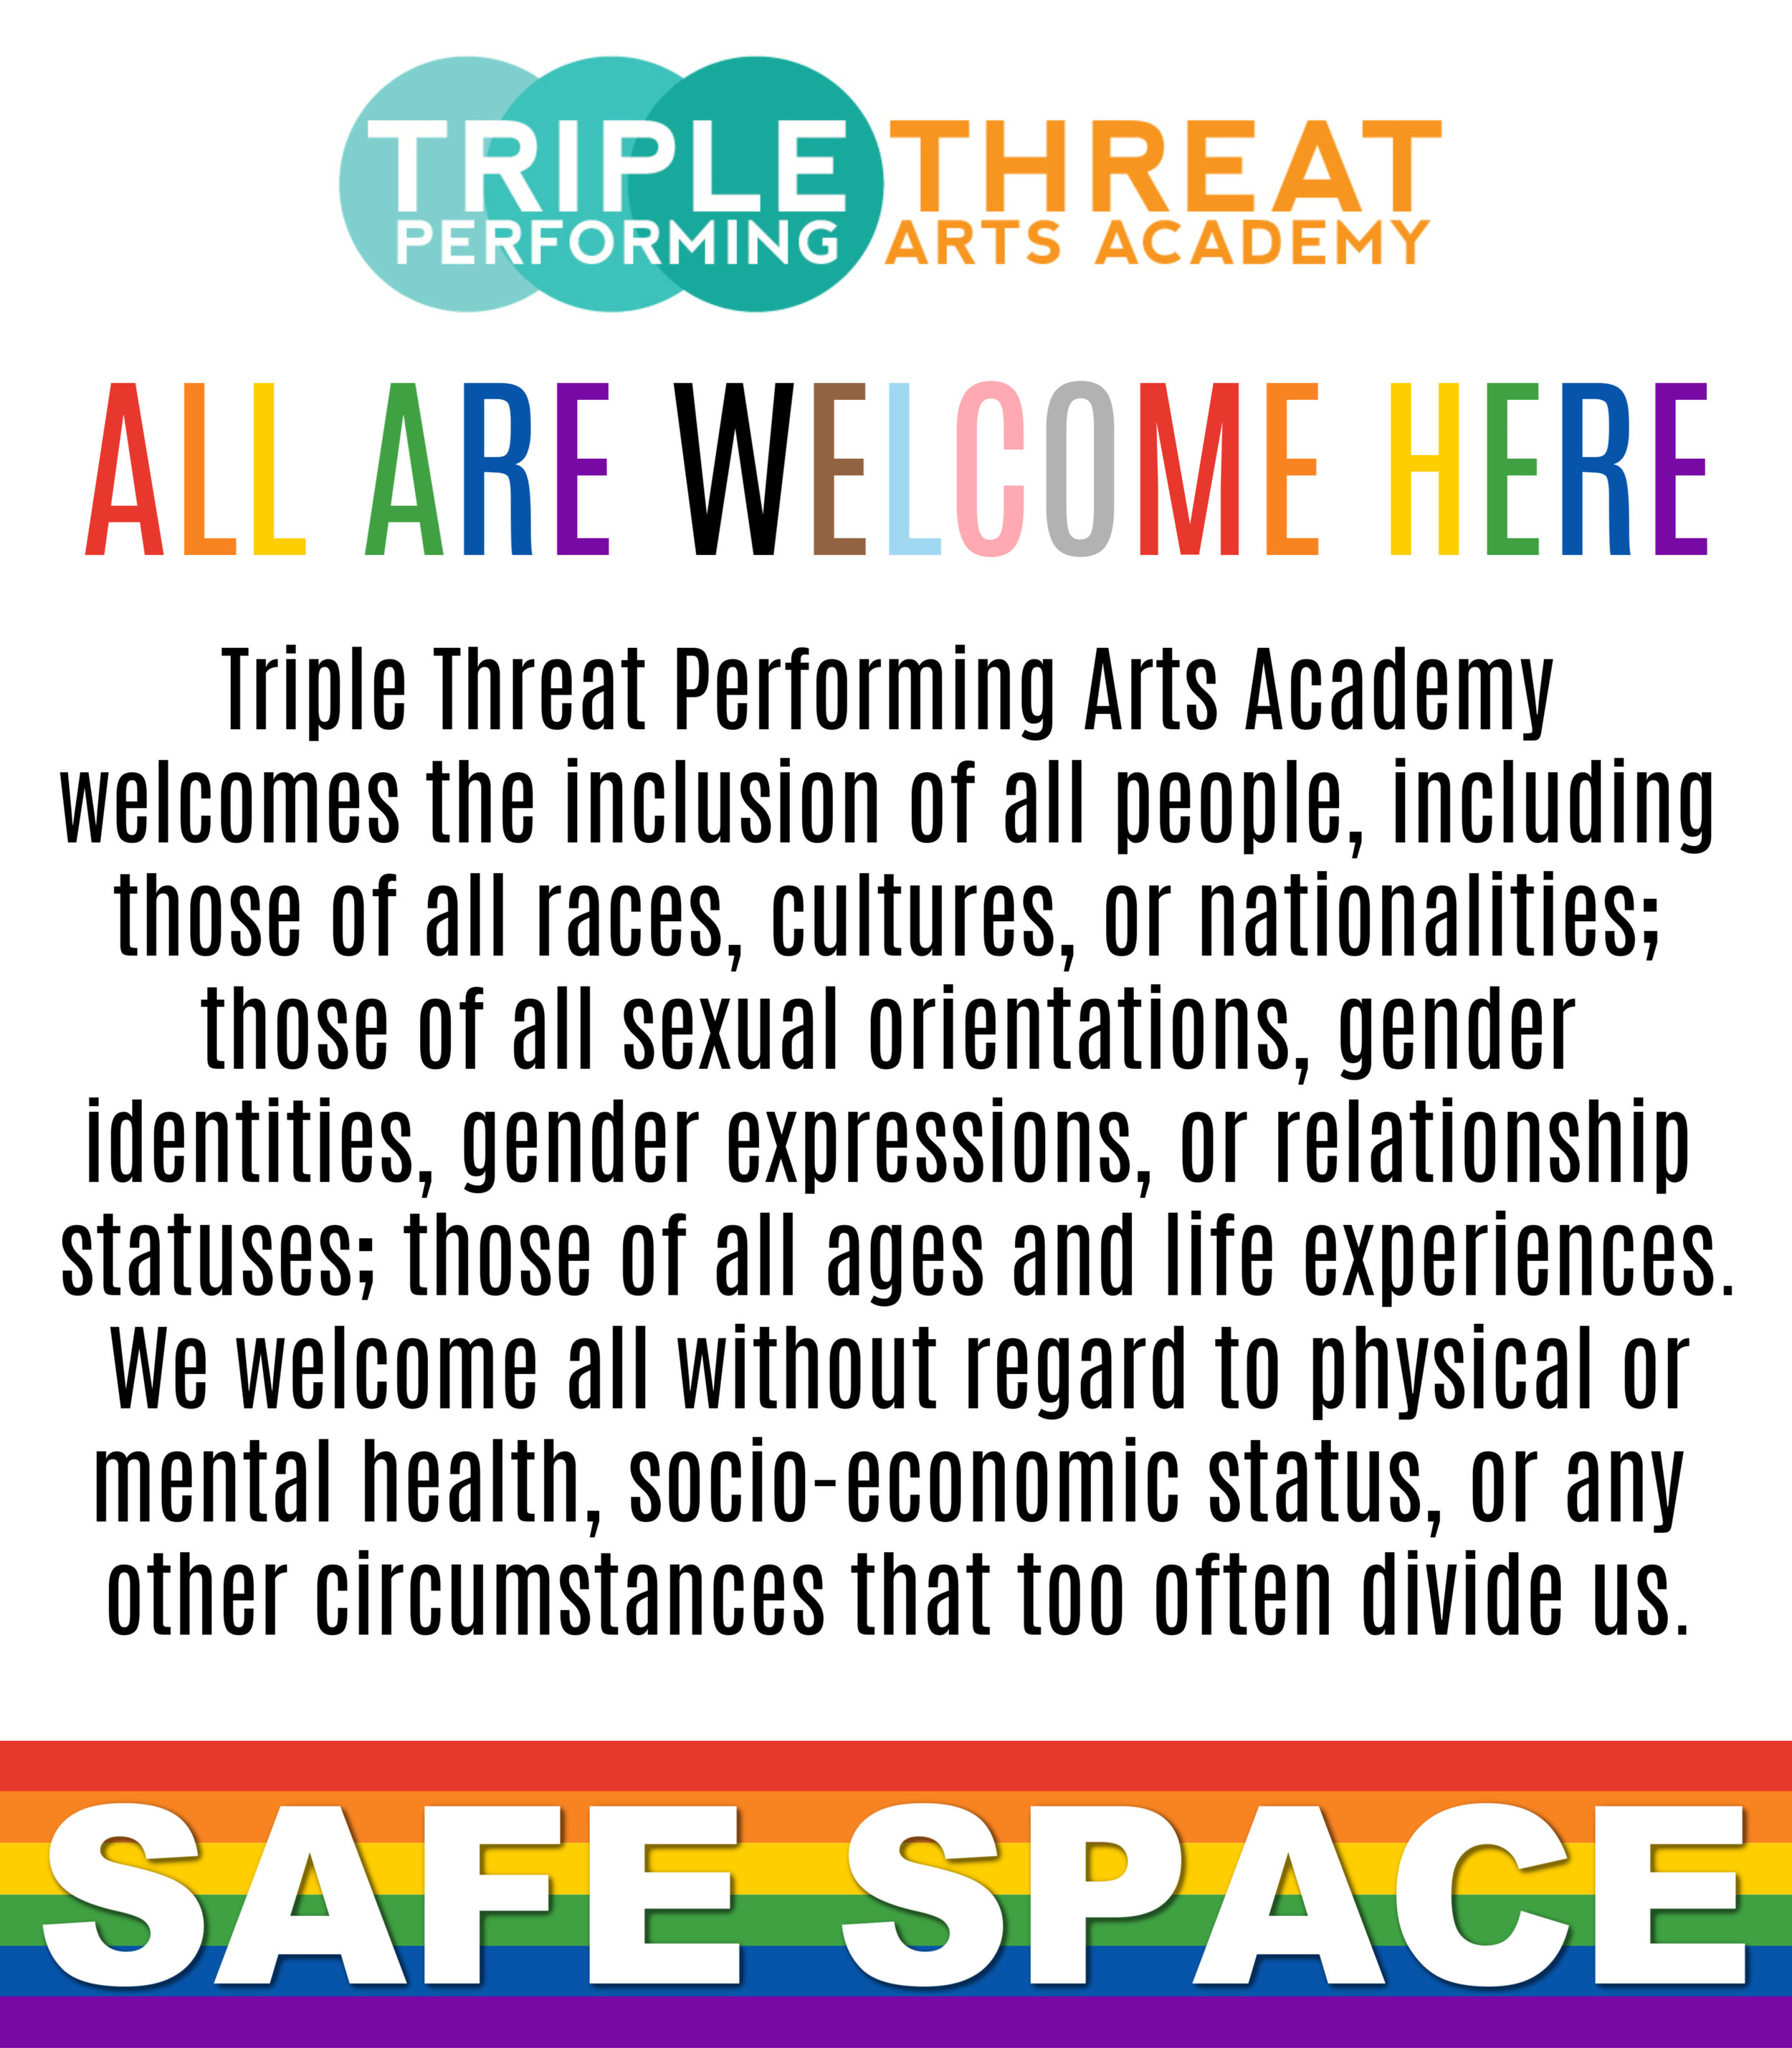 Triple Threat Welcome Statement.jpg